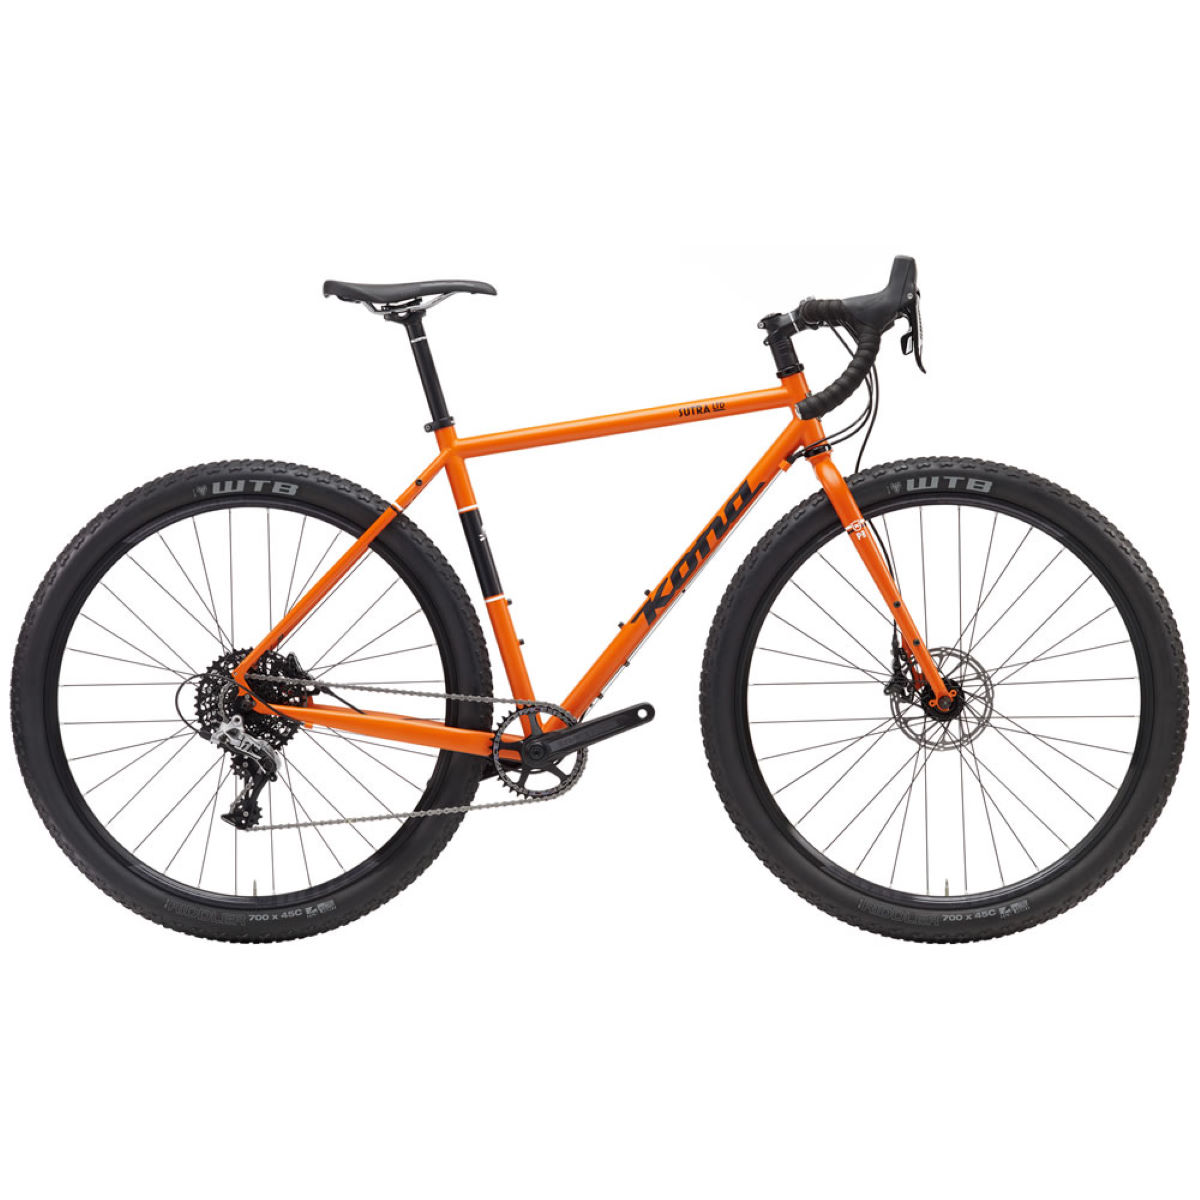 Vélo de cyclotourisme Kona Sutra LTD (2017) - 46cm Orange